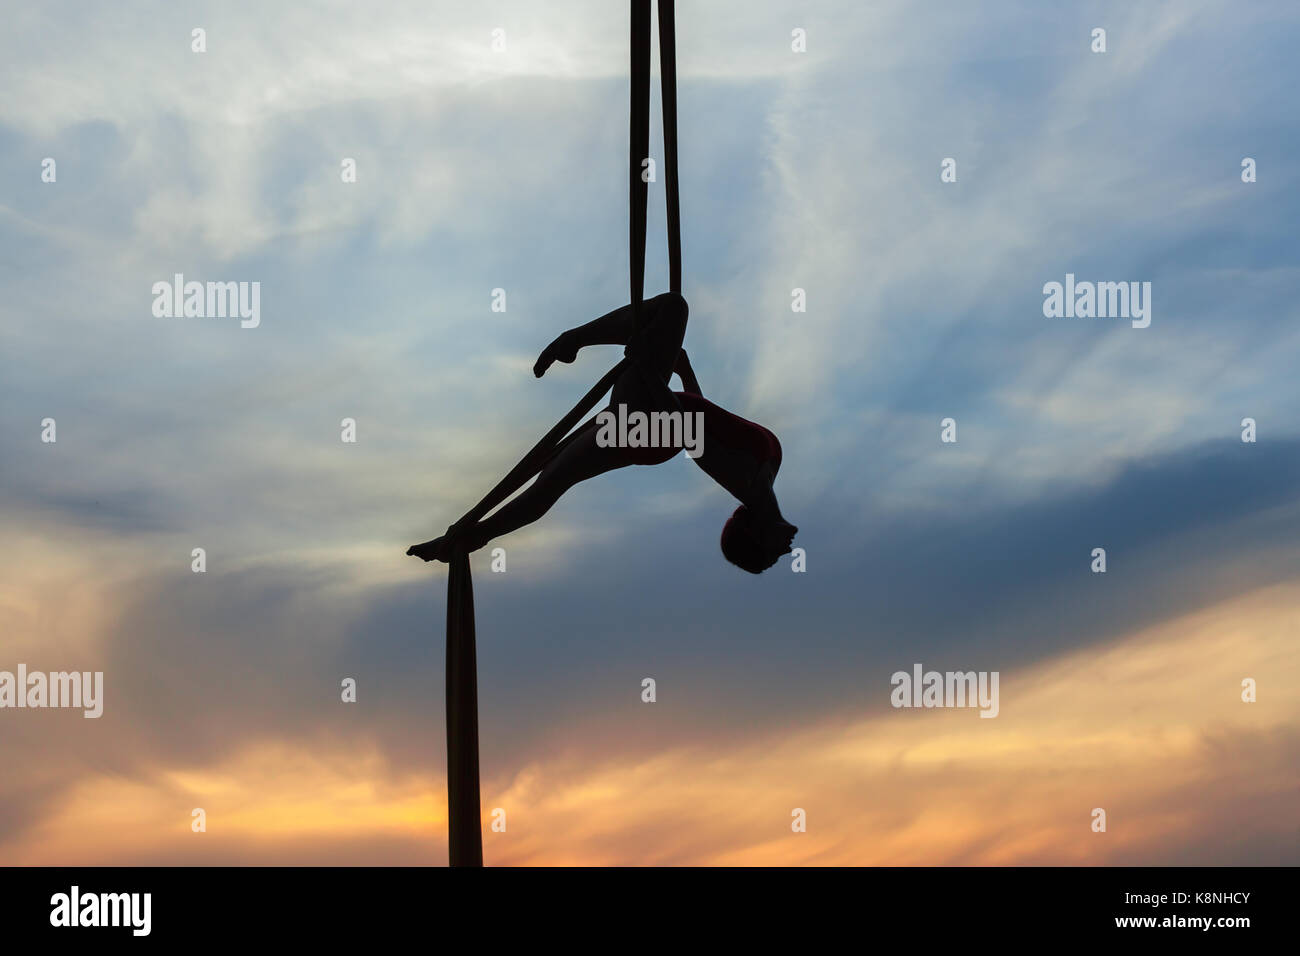 woman in a hammock does tricks against the sky she is an athlete aerial acrobat woman hanging in aerial silk stock photos  u0026 woman hanging in      rh   alamy